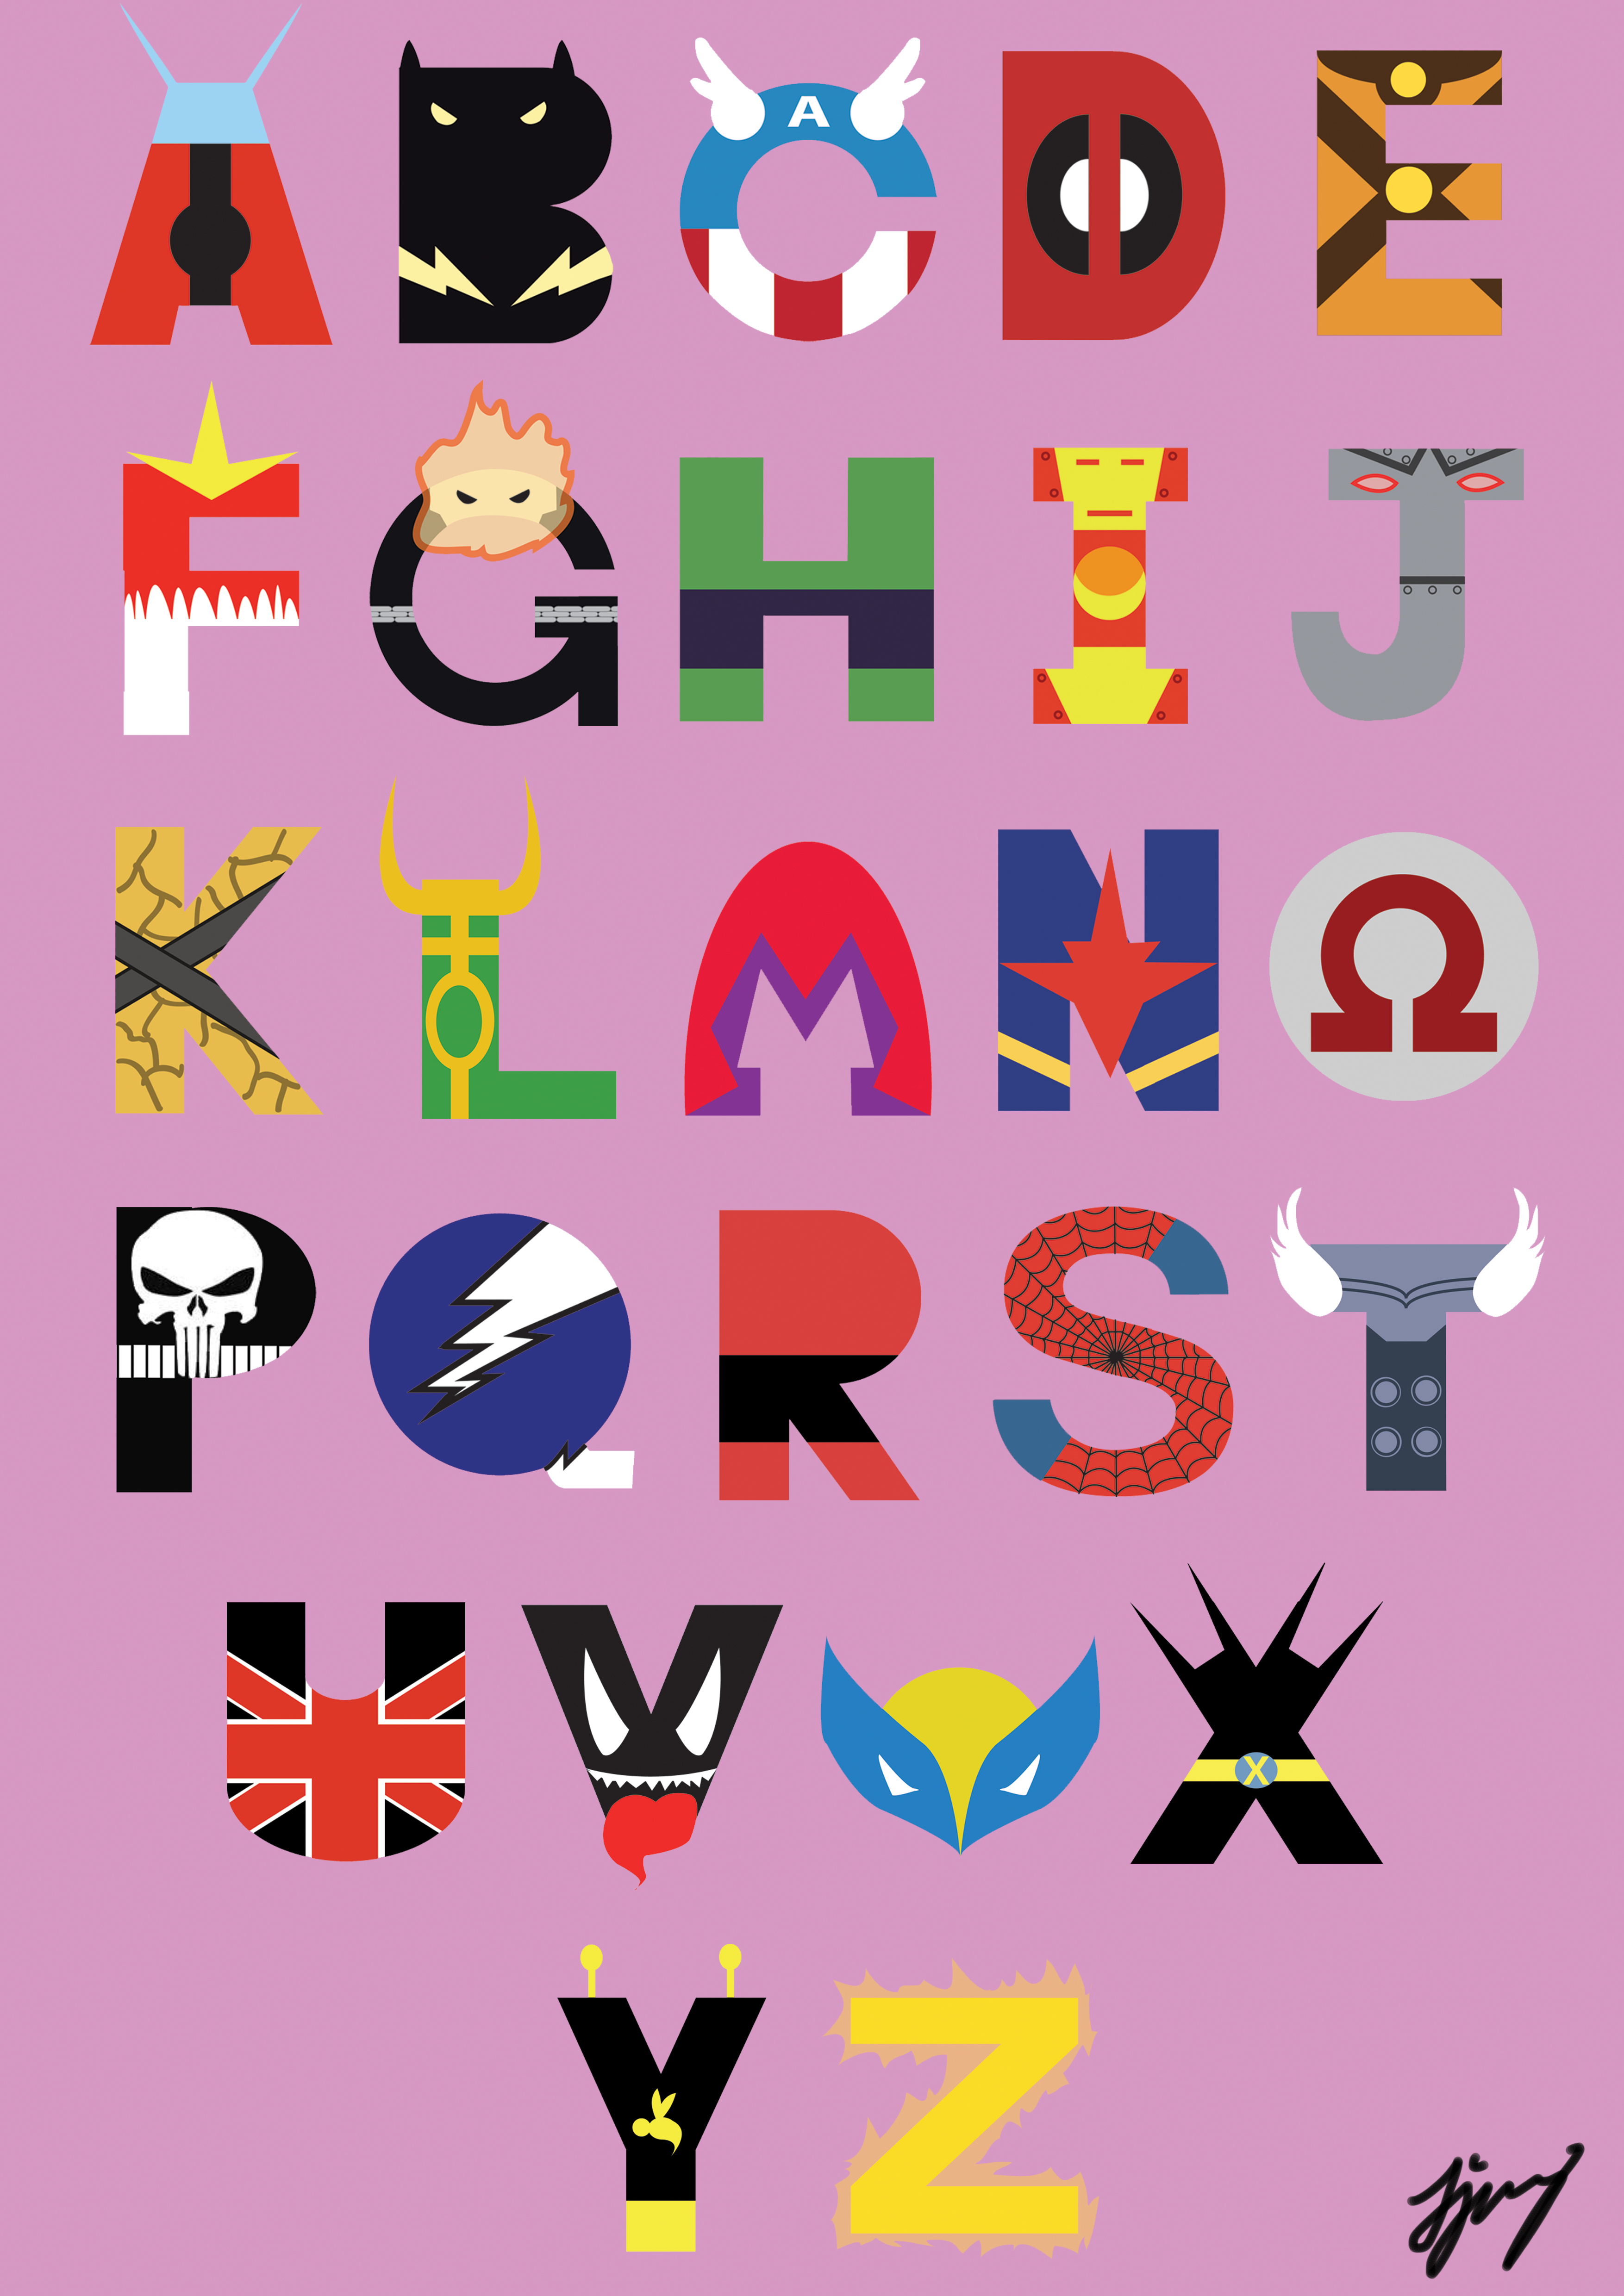 Superhero Names And Logos | www.imgkid.com - The Image Kid ...